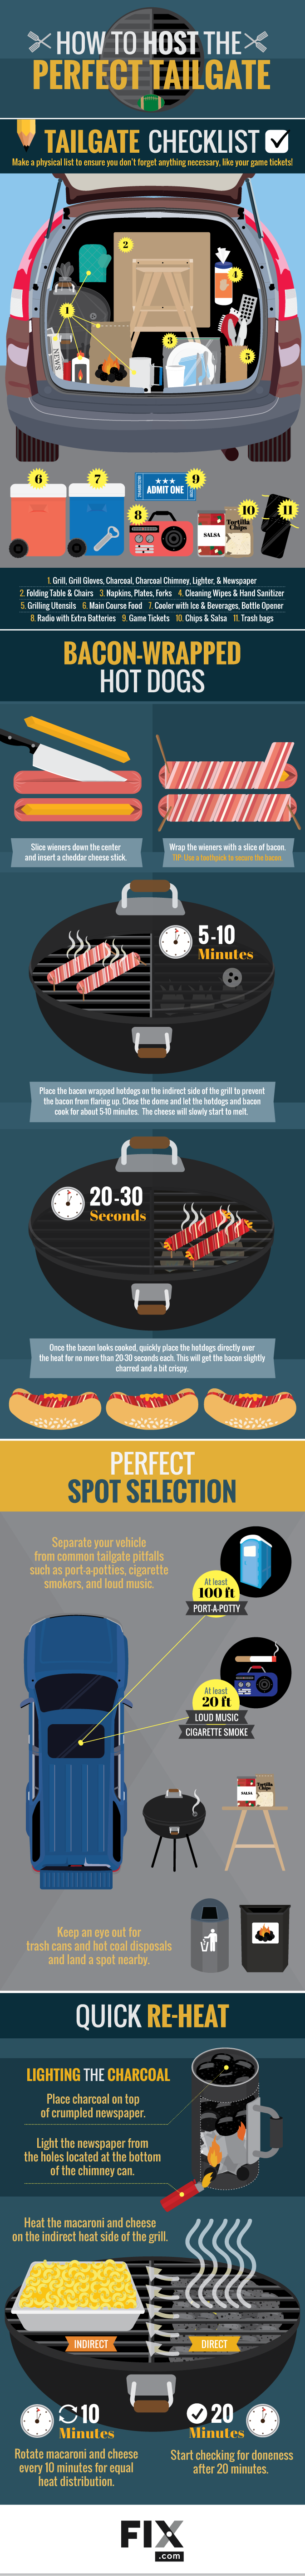 How to Host the Perfect Tailgate #Infographic